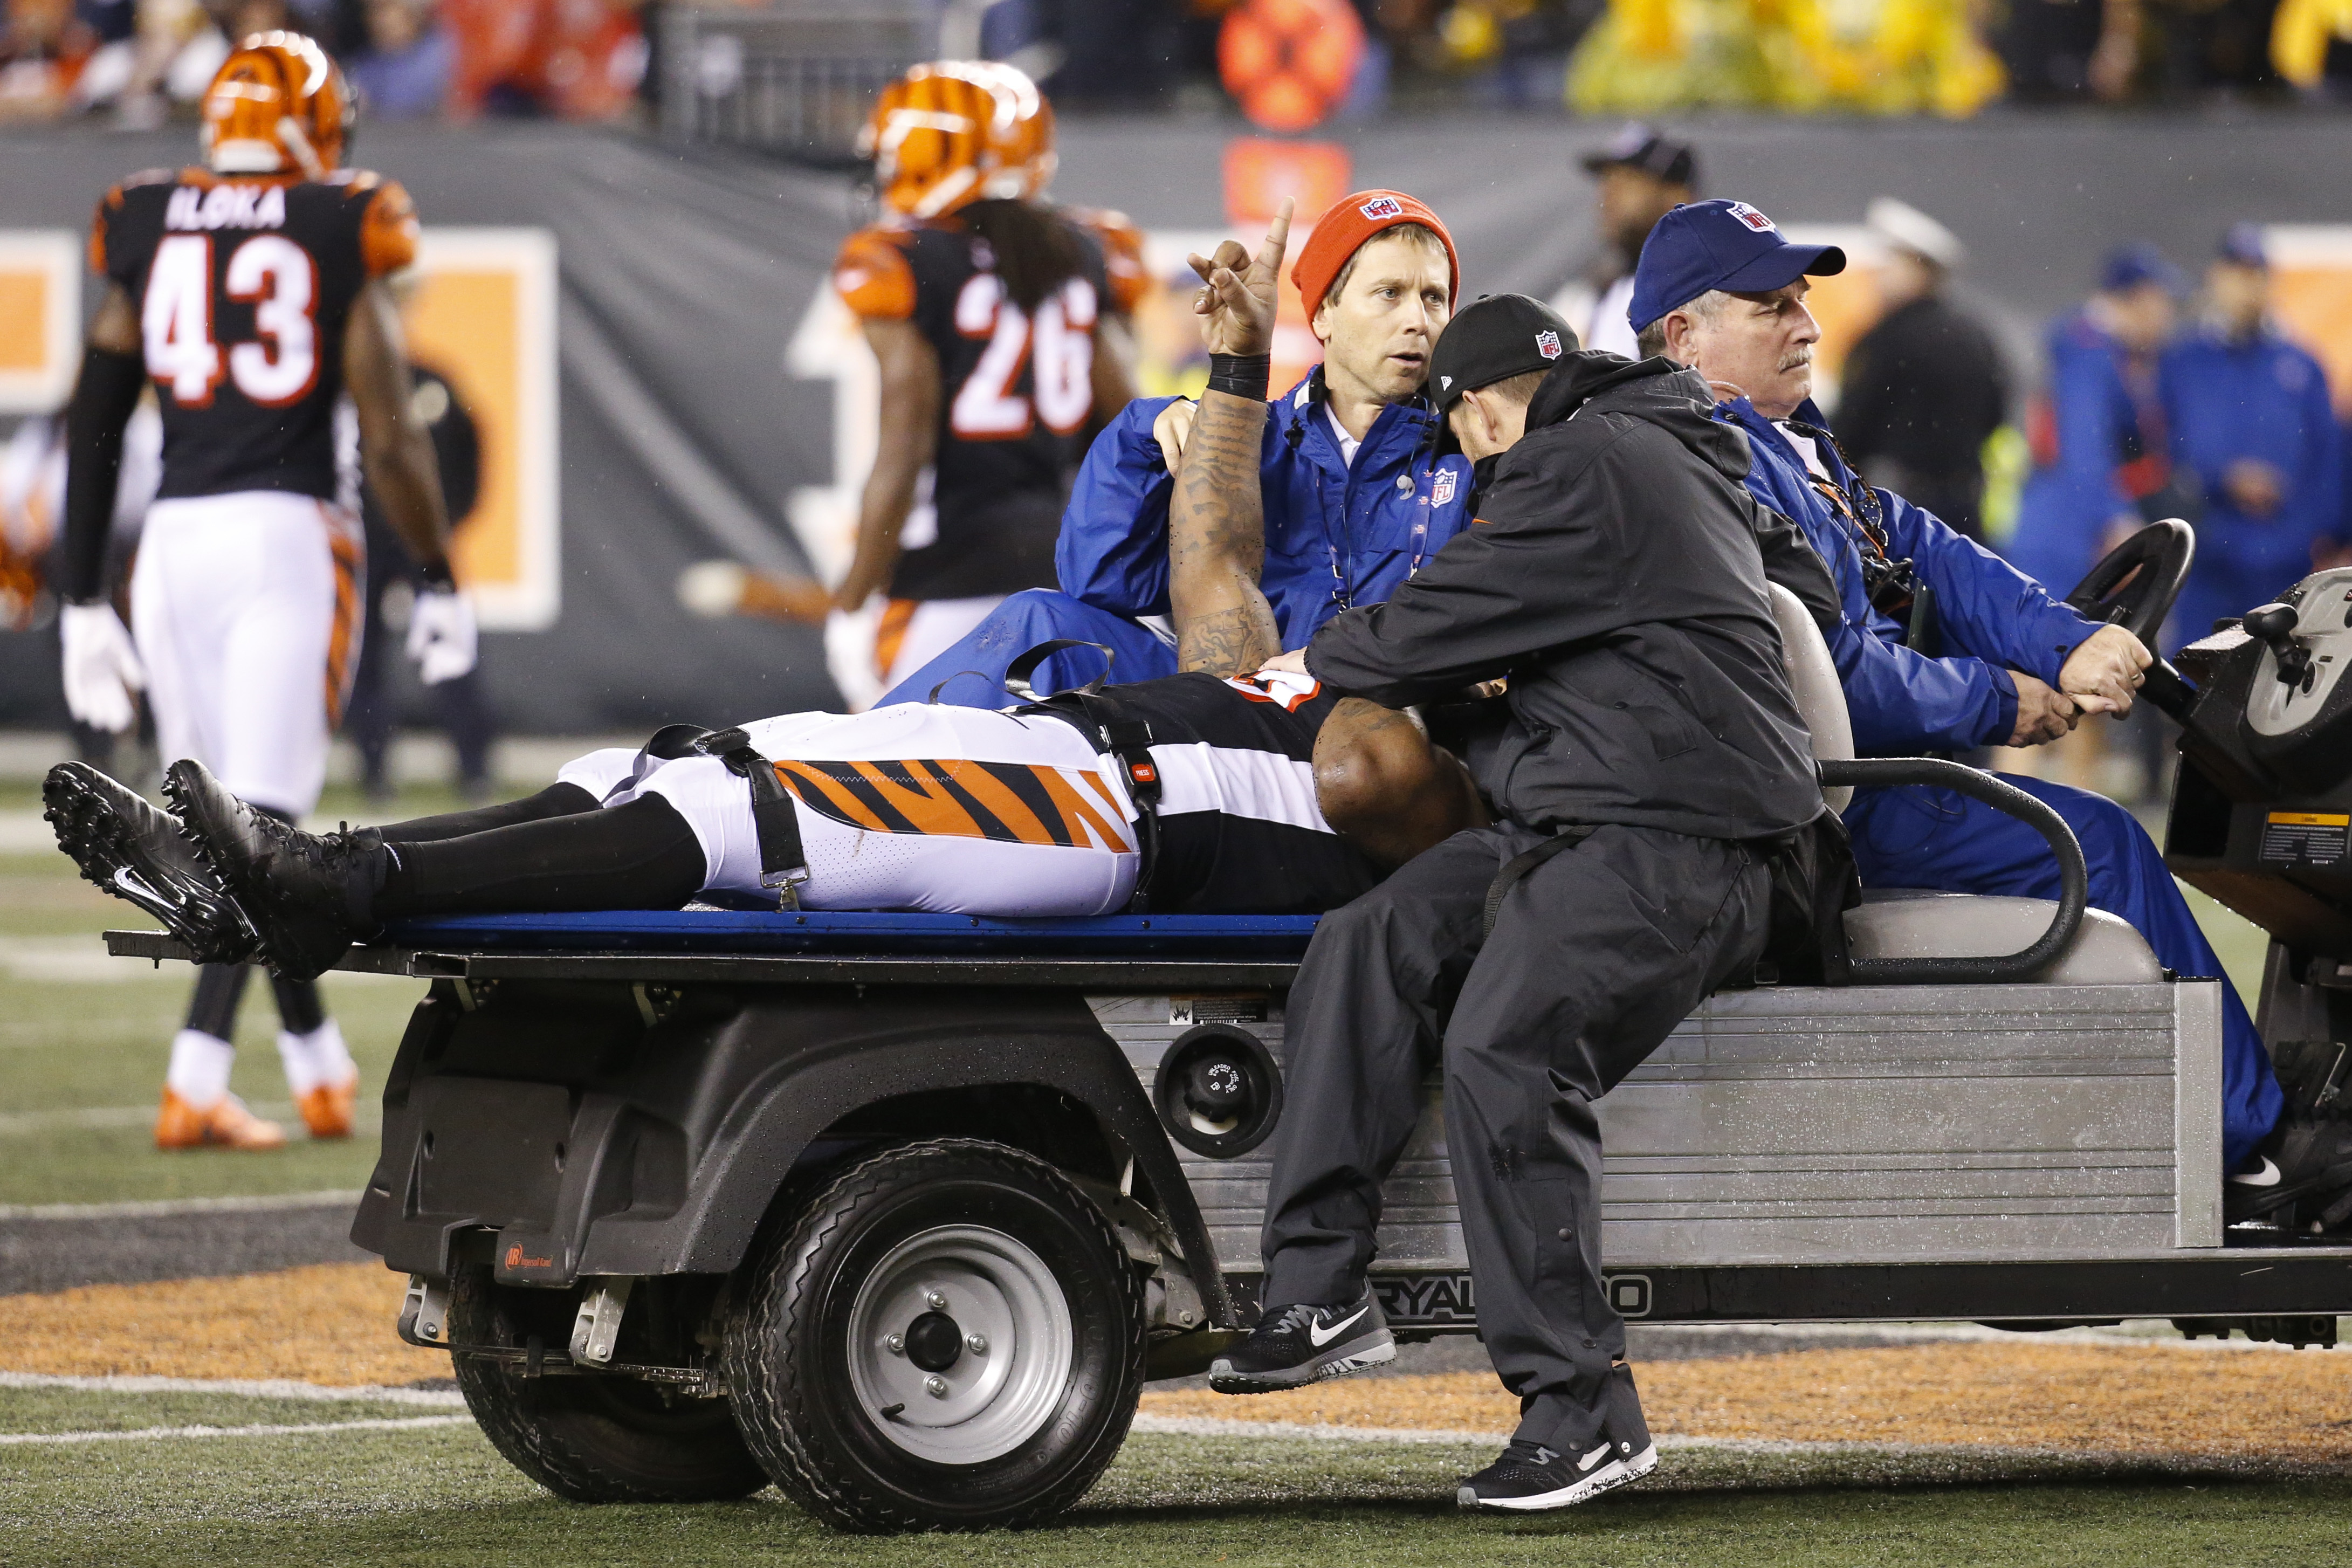 Cincinnati Bengals outside linebacker Vontaze Burfict gestures as he is carted off the field after an apparent injury in the second half of an NFL football game against the Pittsburgh Steelers, Monday, Dec. 4, 2017, in Cincinnati. (AP Photo/Frank Victores)